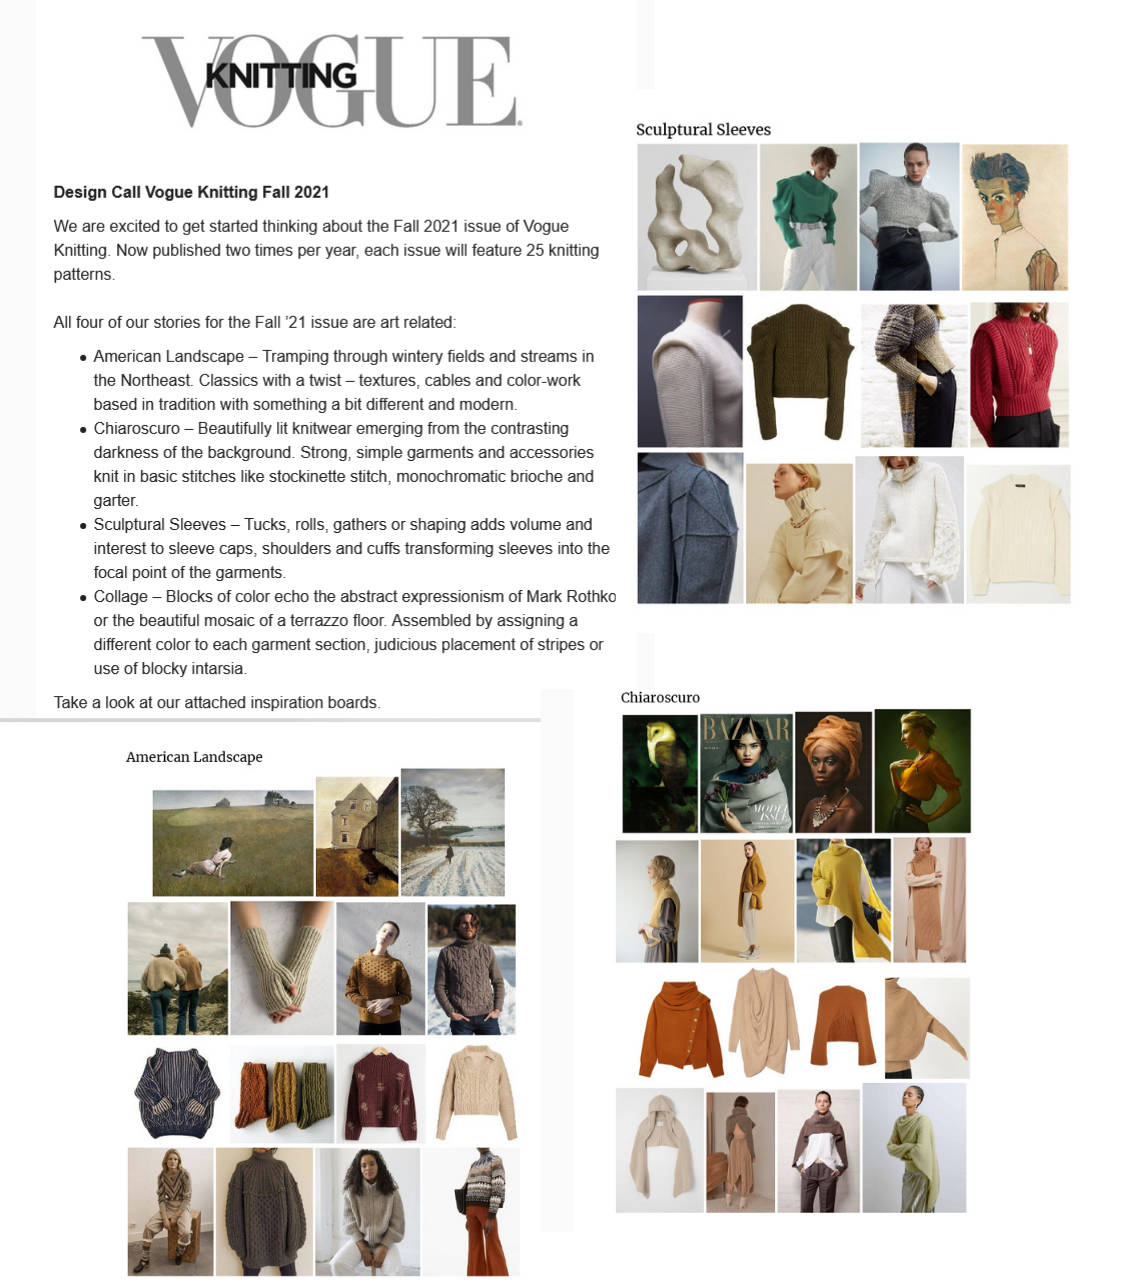 Vogue knitting fall 2021 design submission call